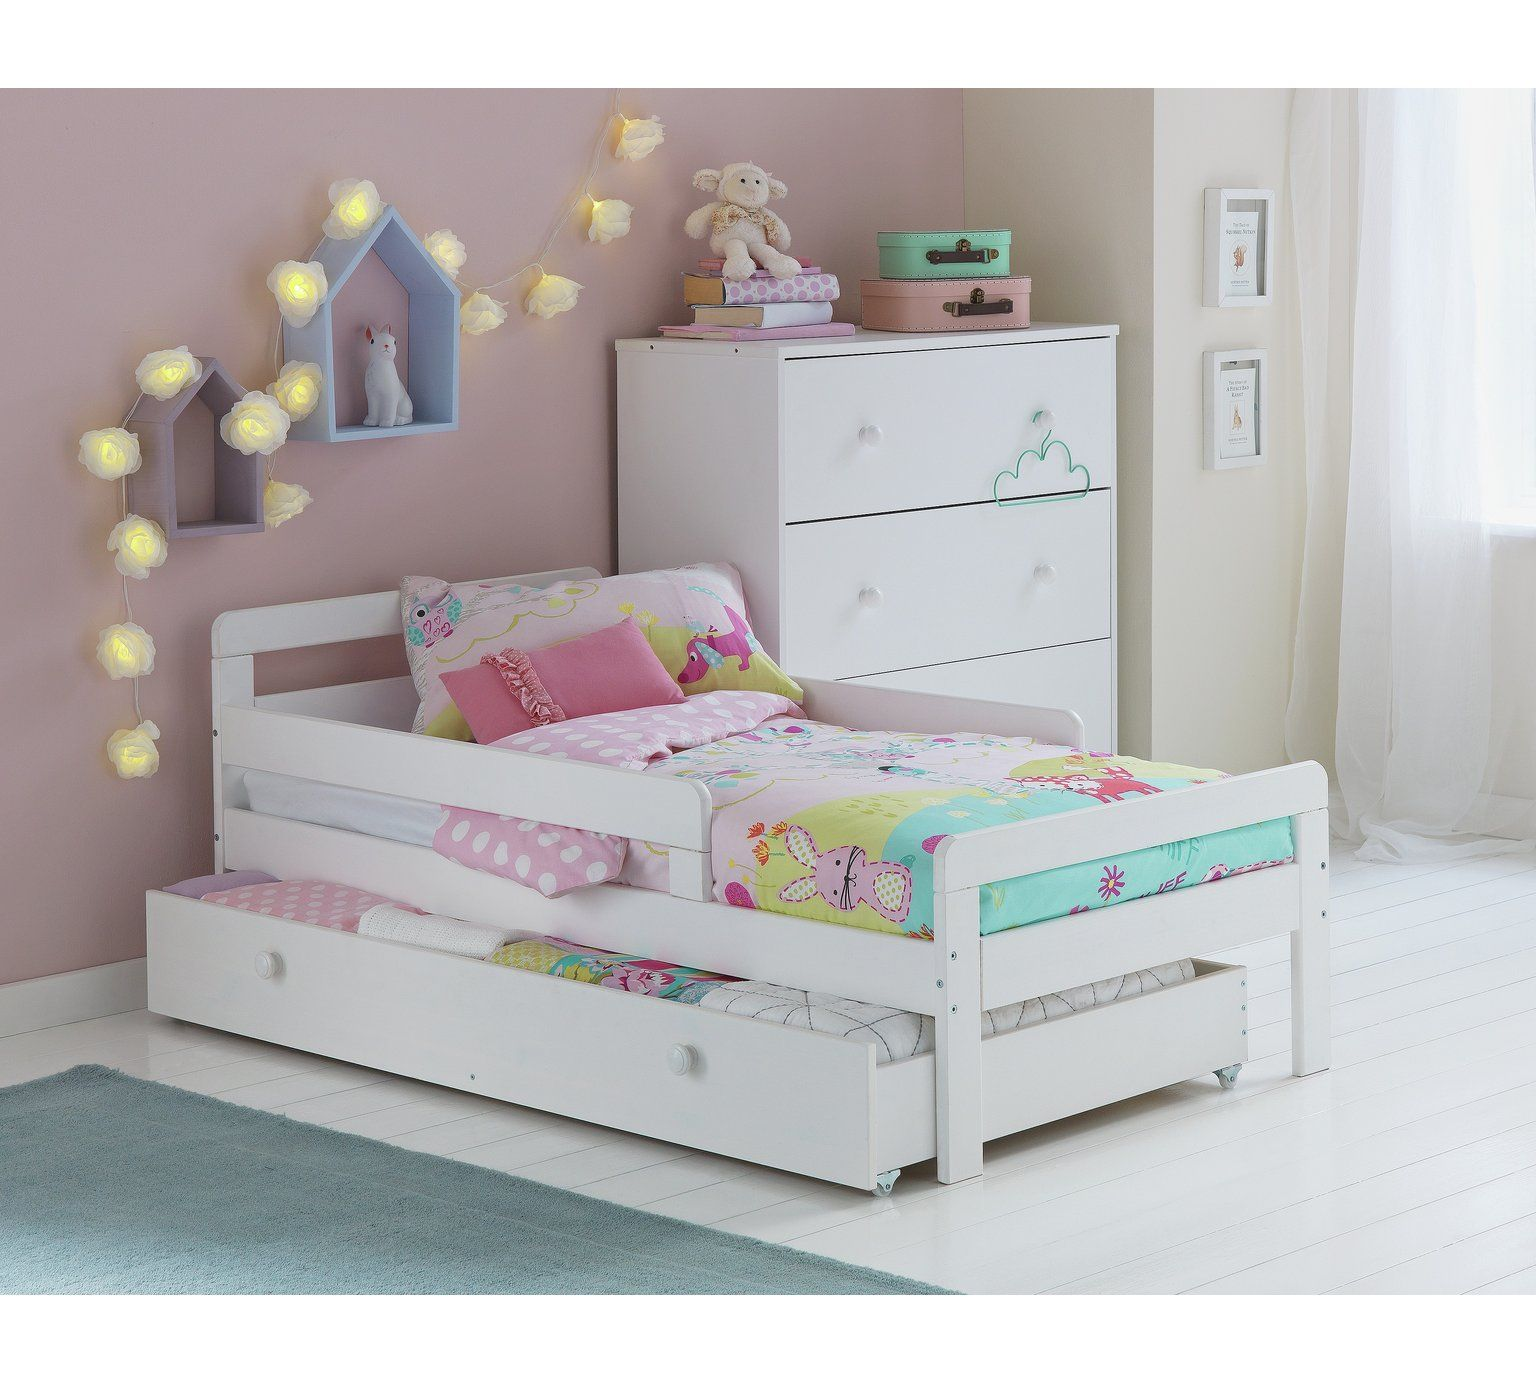 Buy Argos Home Ellis Toddler Bed Frame with Storage - White | Kids